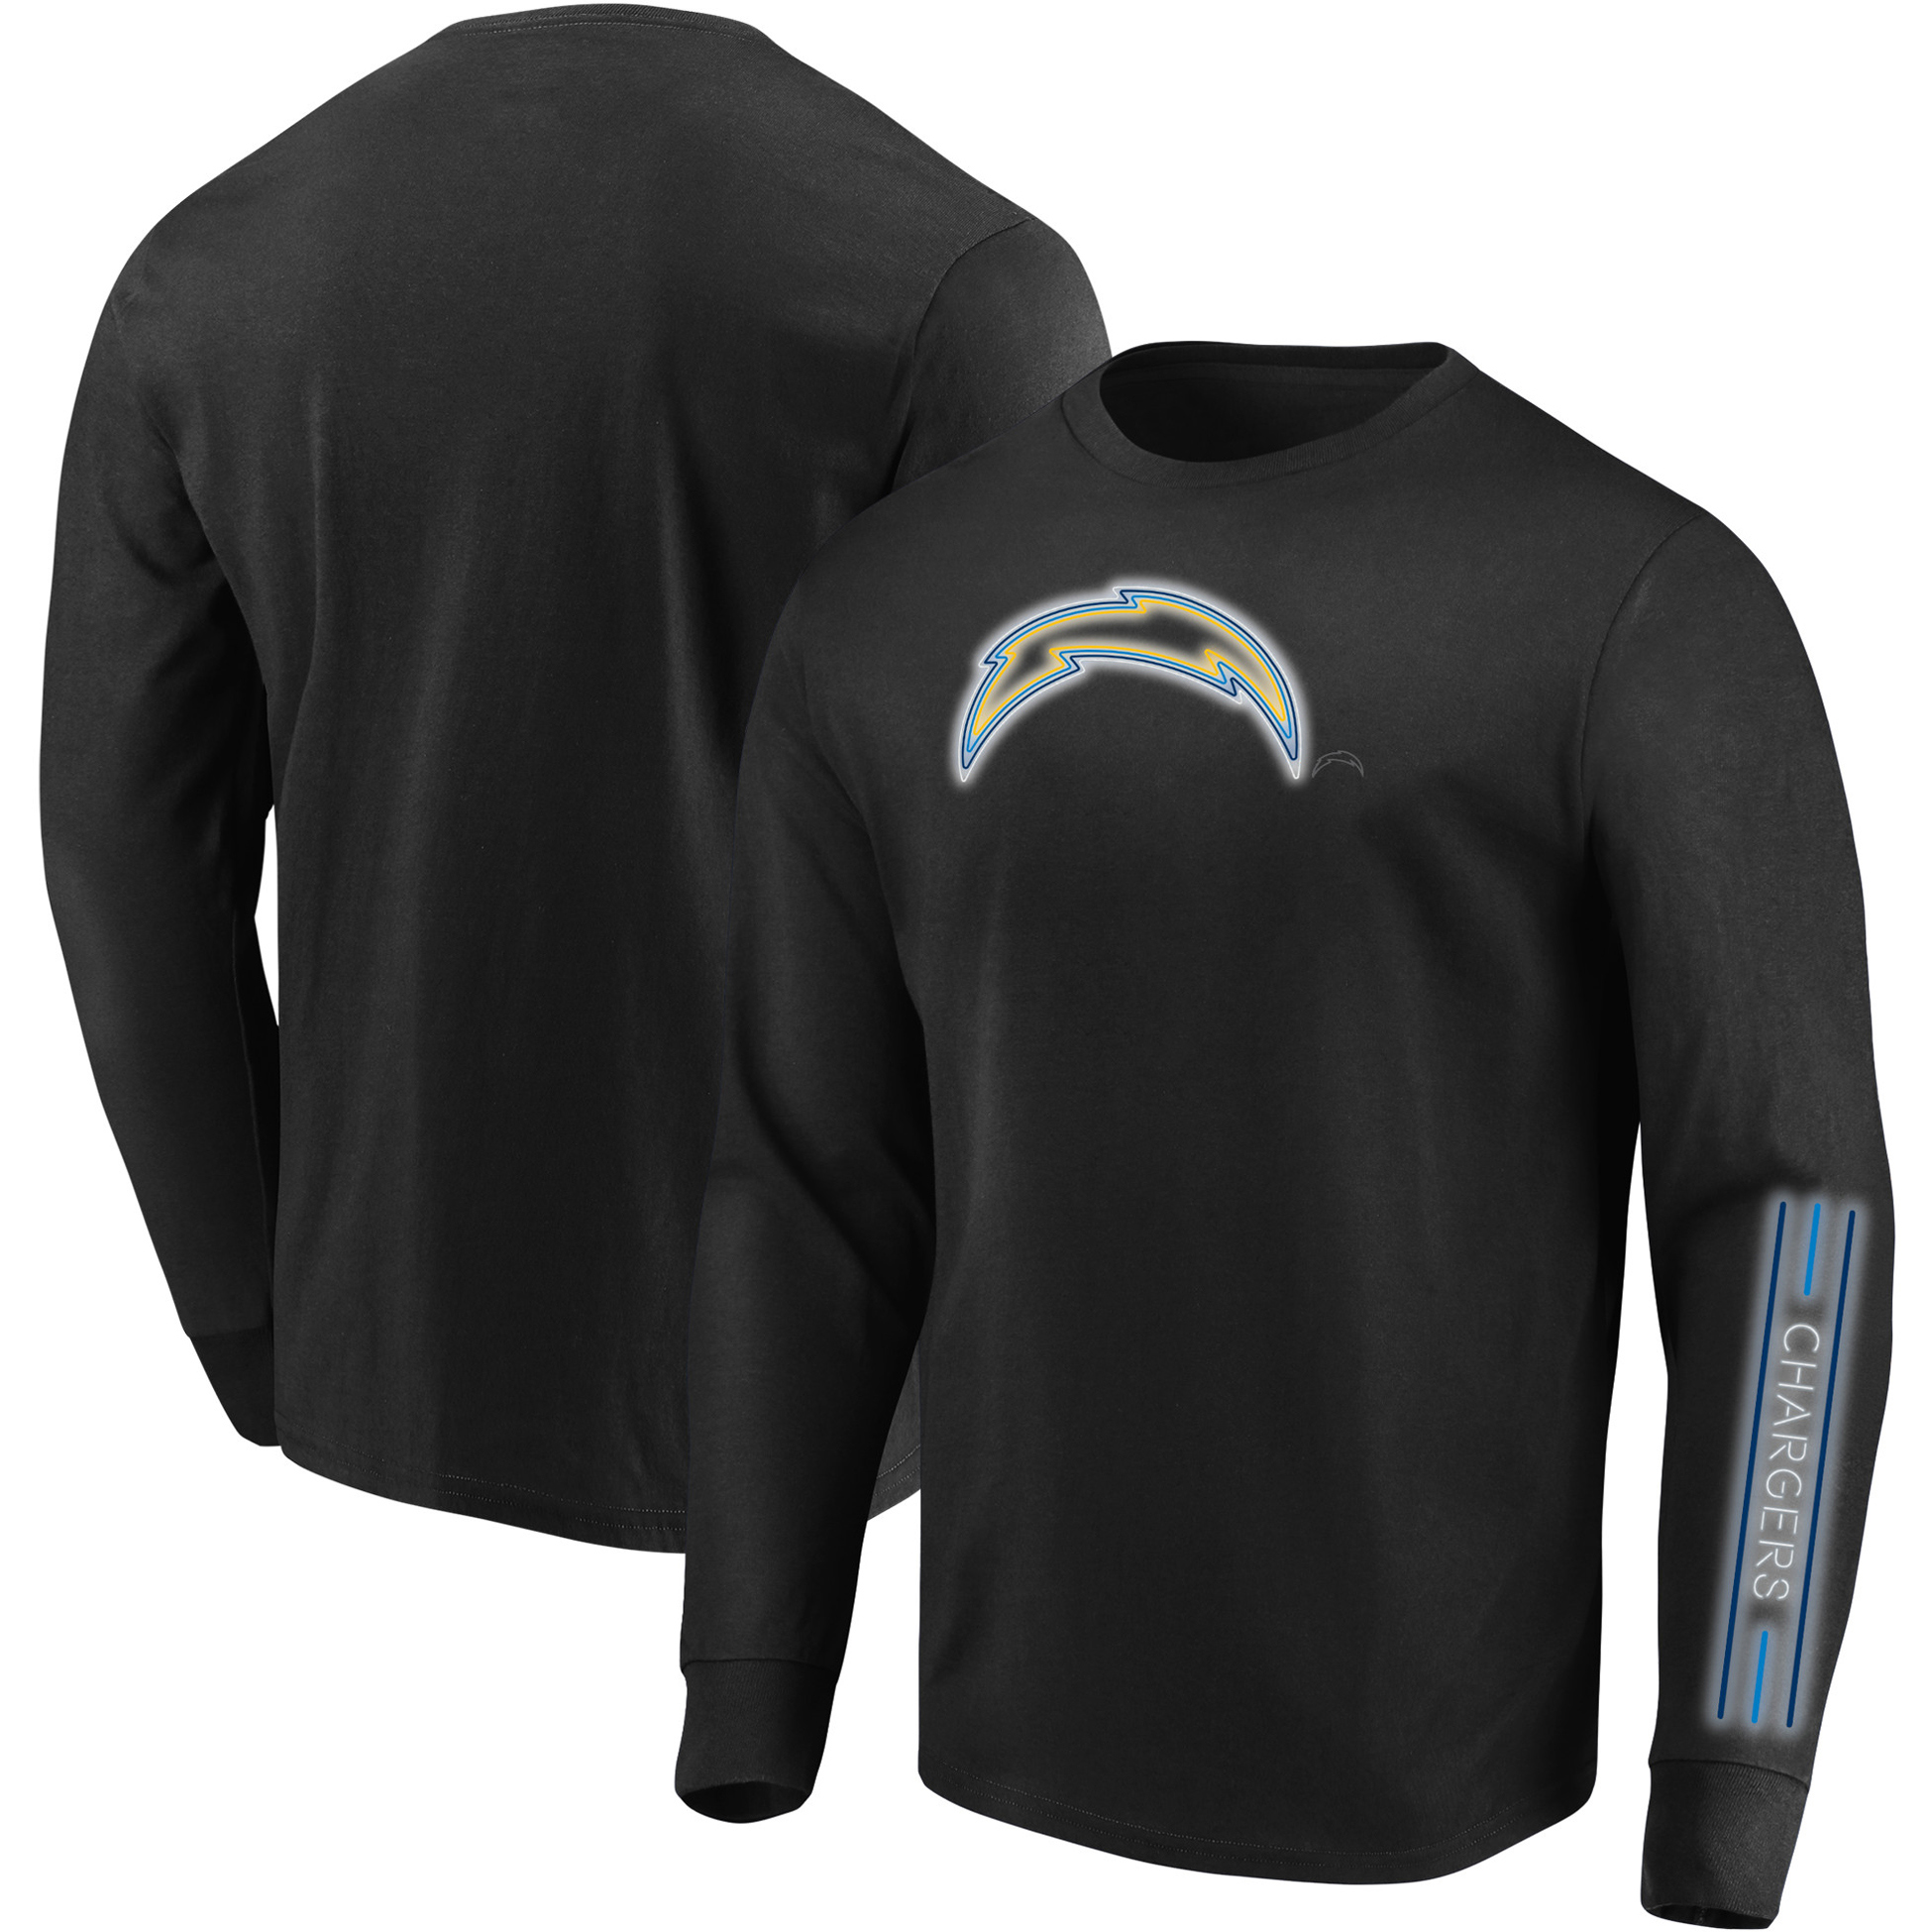 Los Angeles Chargers Majestic Startling Success Long Sleeve T-Shirt - Black